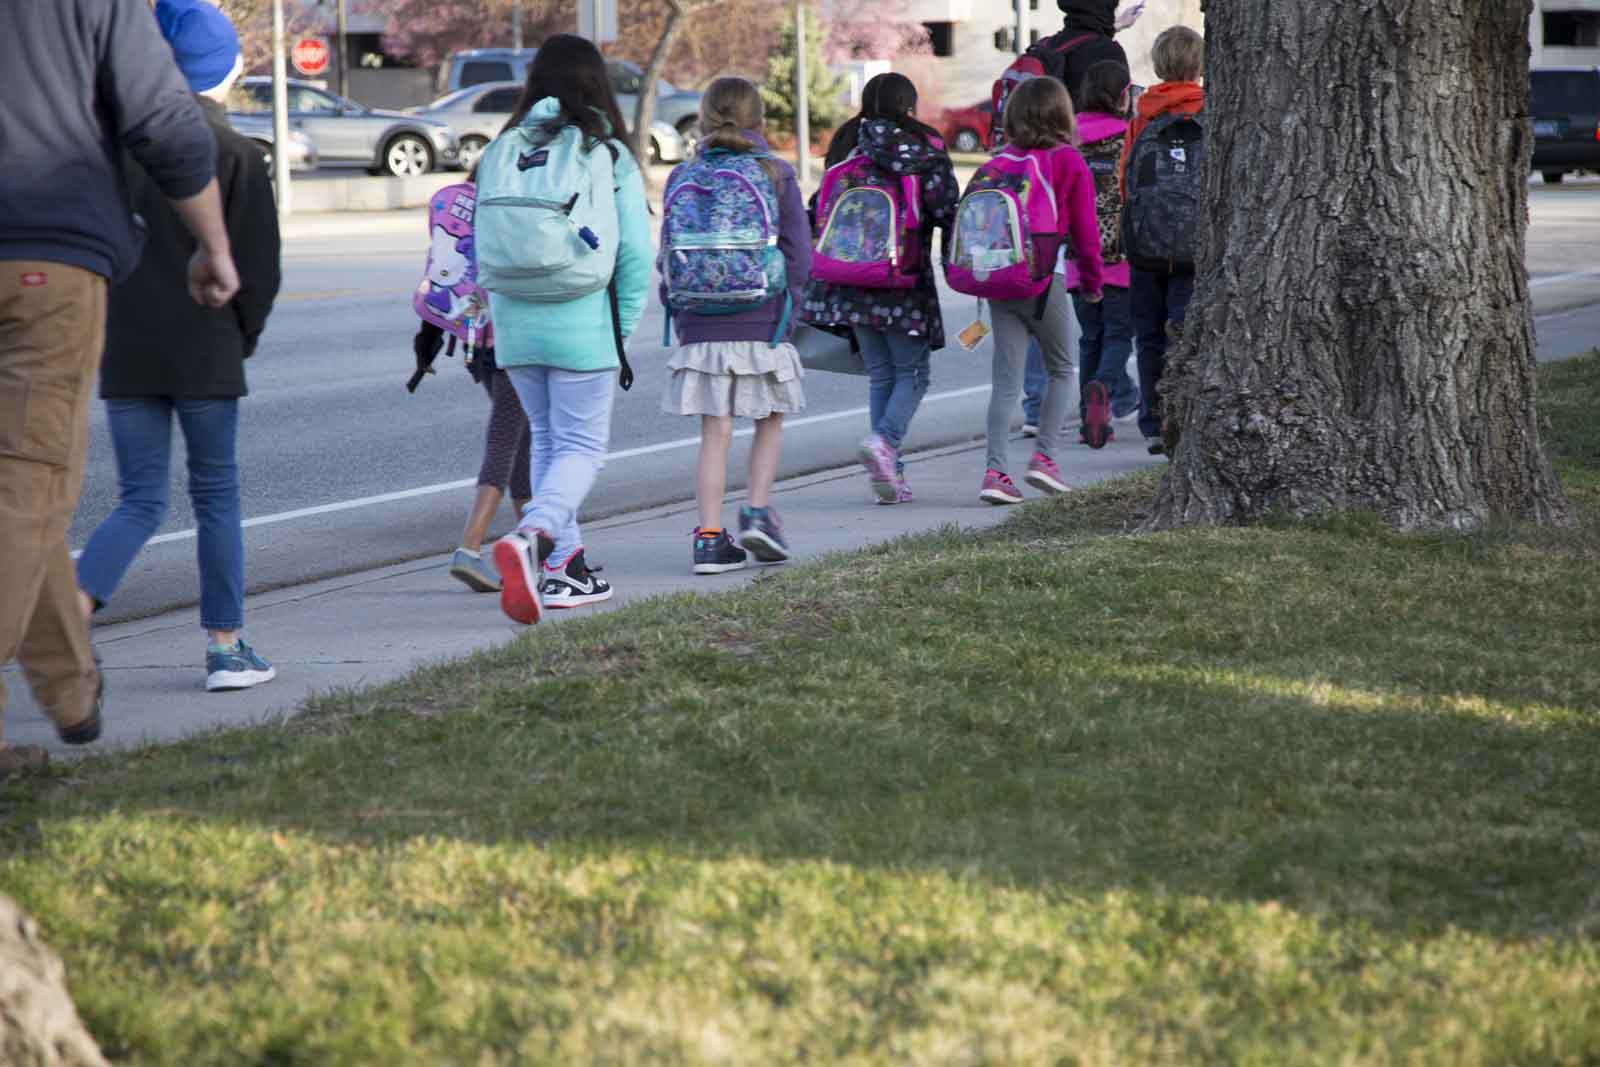 Kids with backpacks walk on the sidewalk next to a grassy area